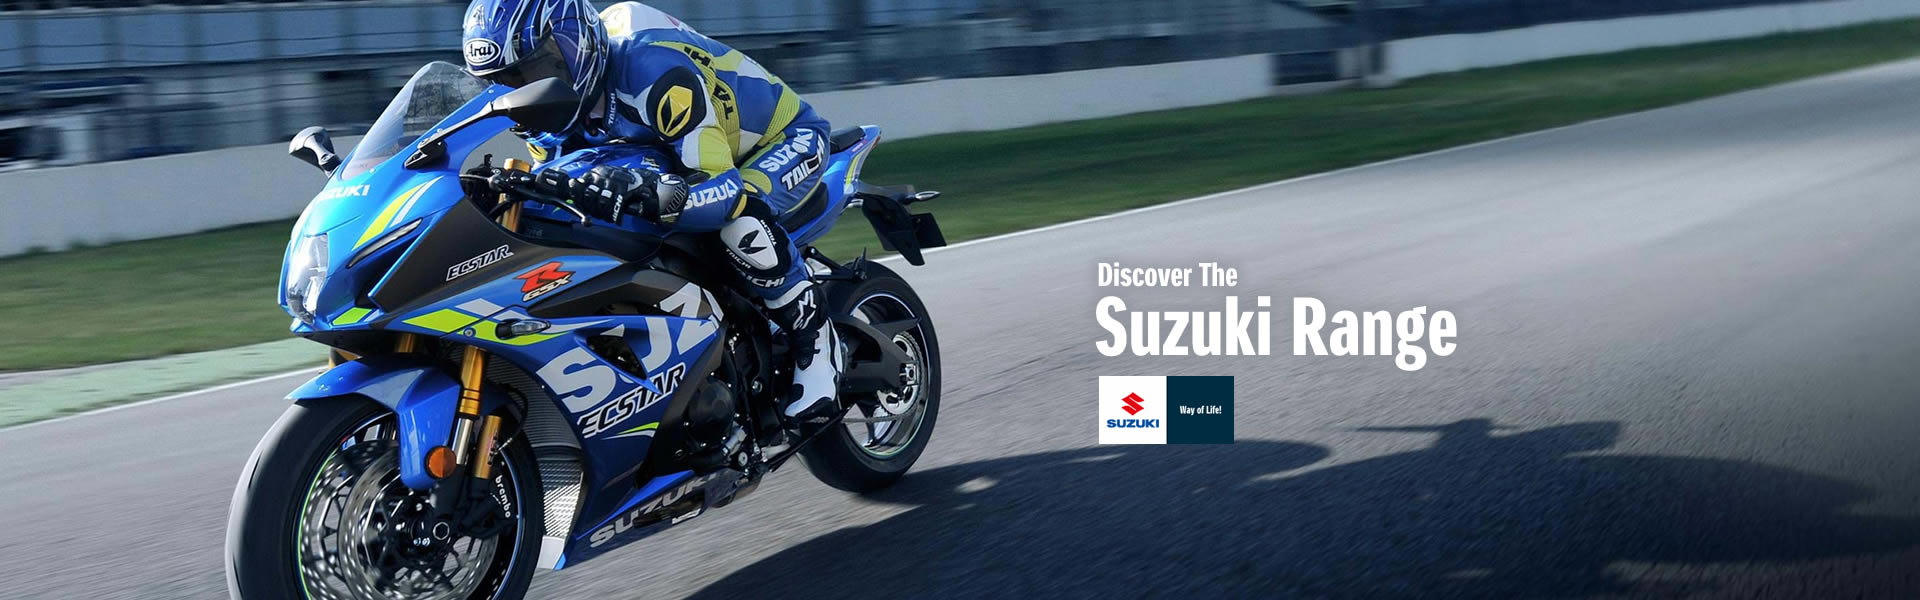 banner-suzuki-full-opt